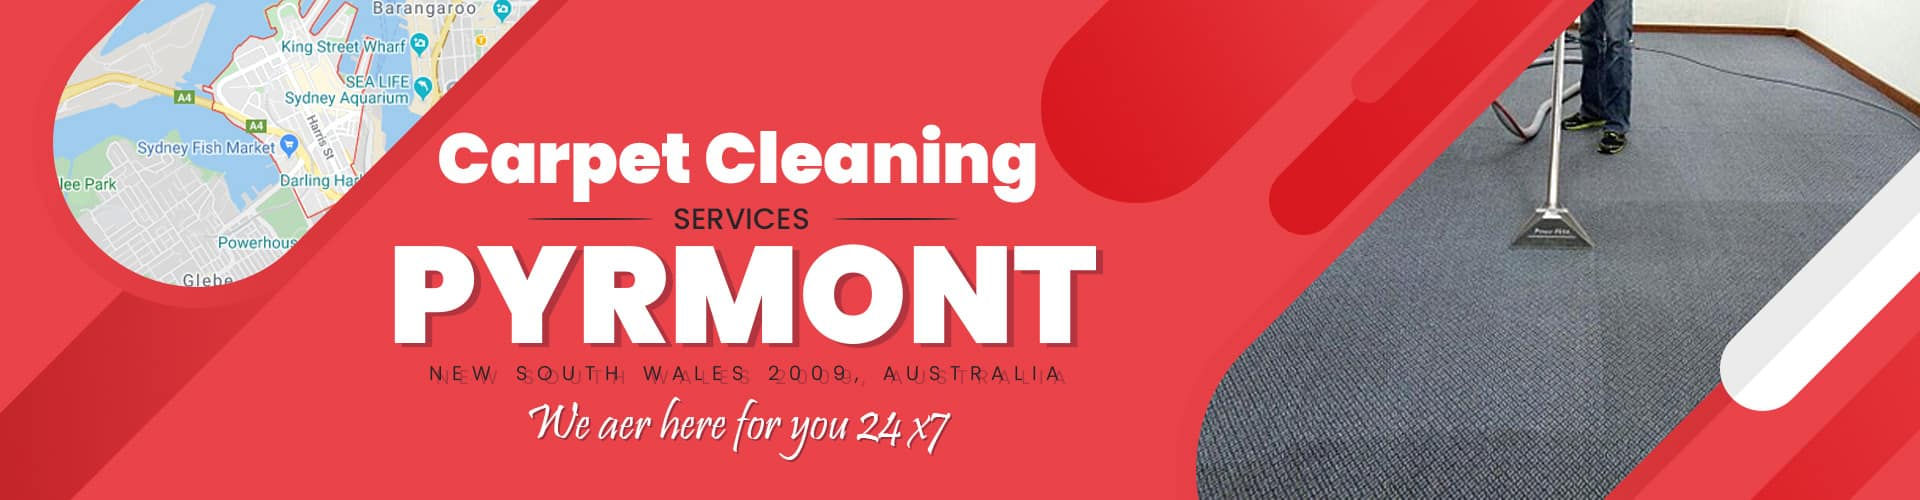 Carpet Cleaning Pyrmont